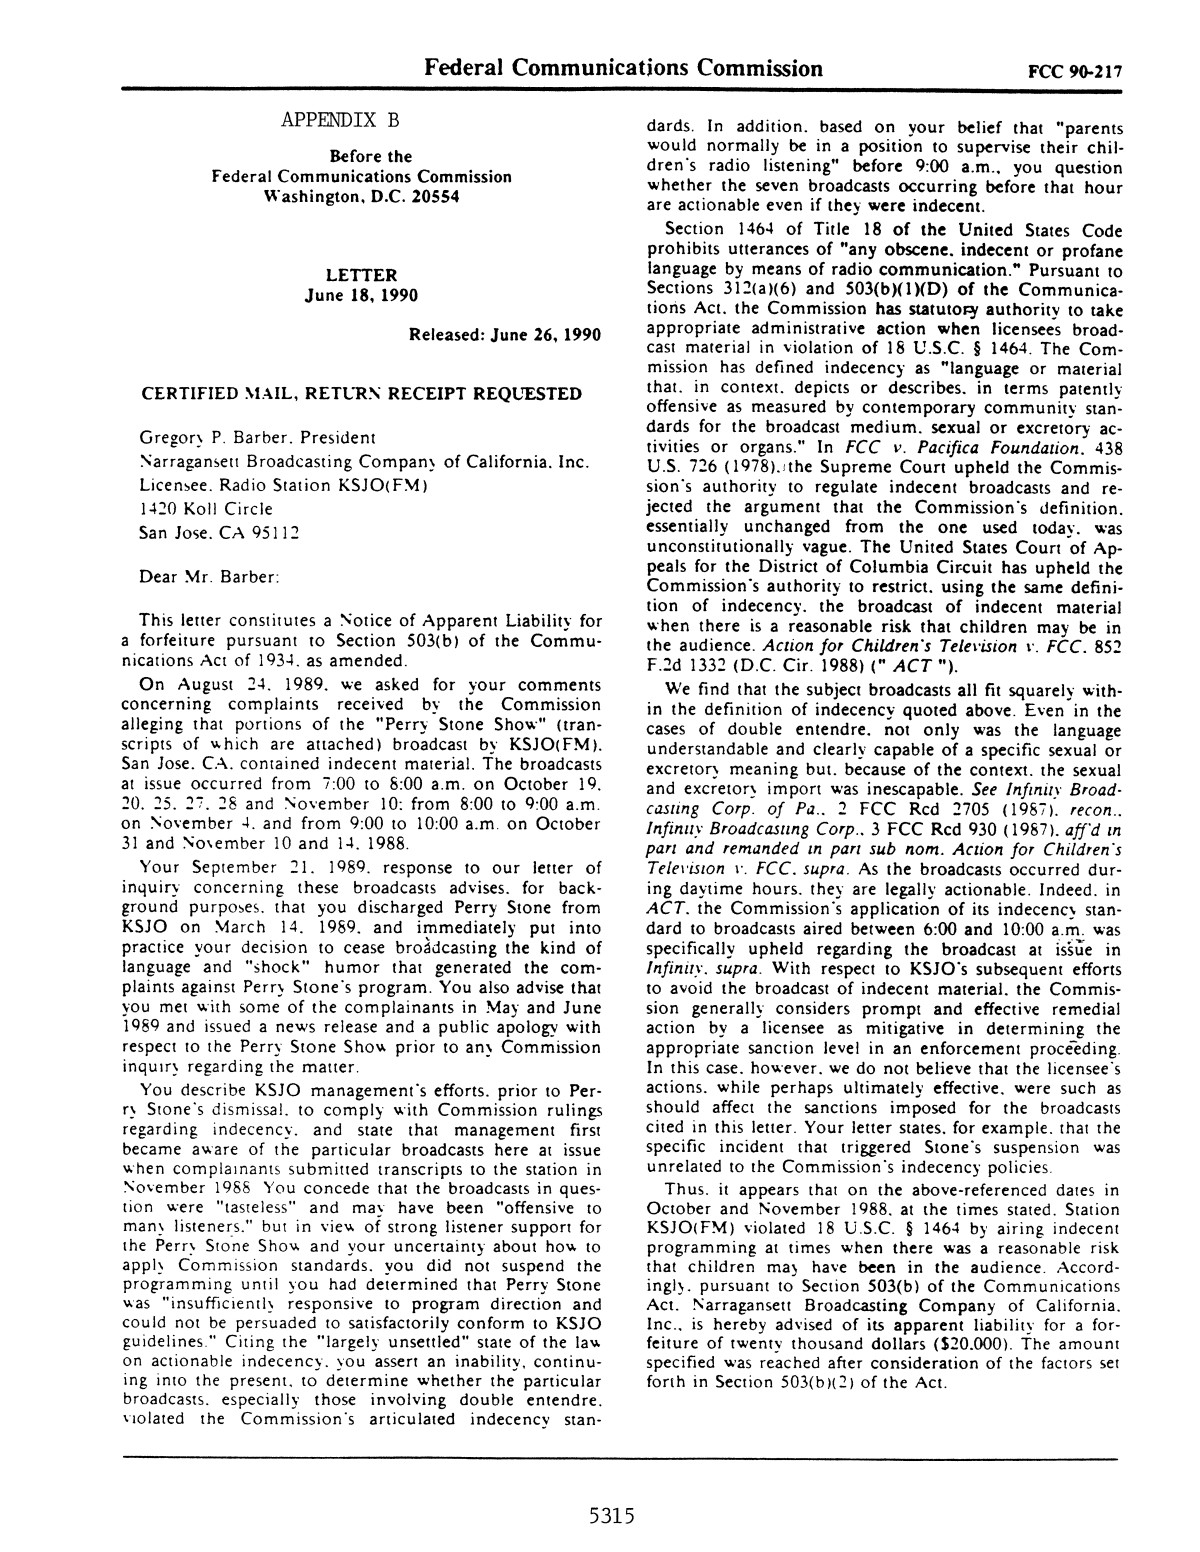 FCC Record, Volume 5, No. 17, Pages 5138 to 5328, August 13 - August 24, 1990                                                                                                      5315